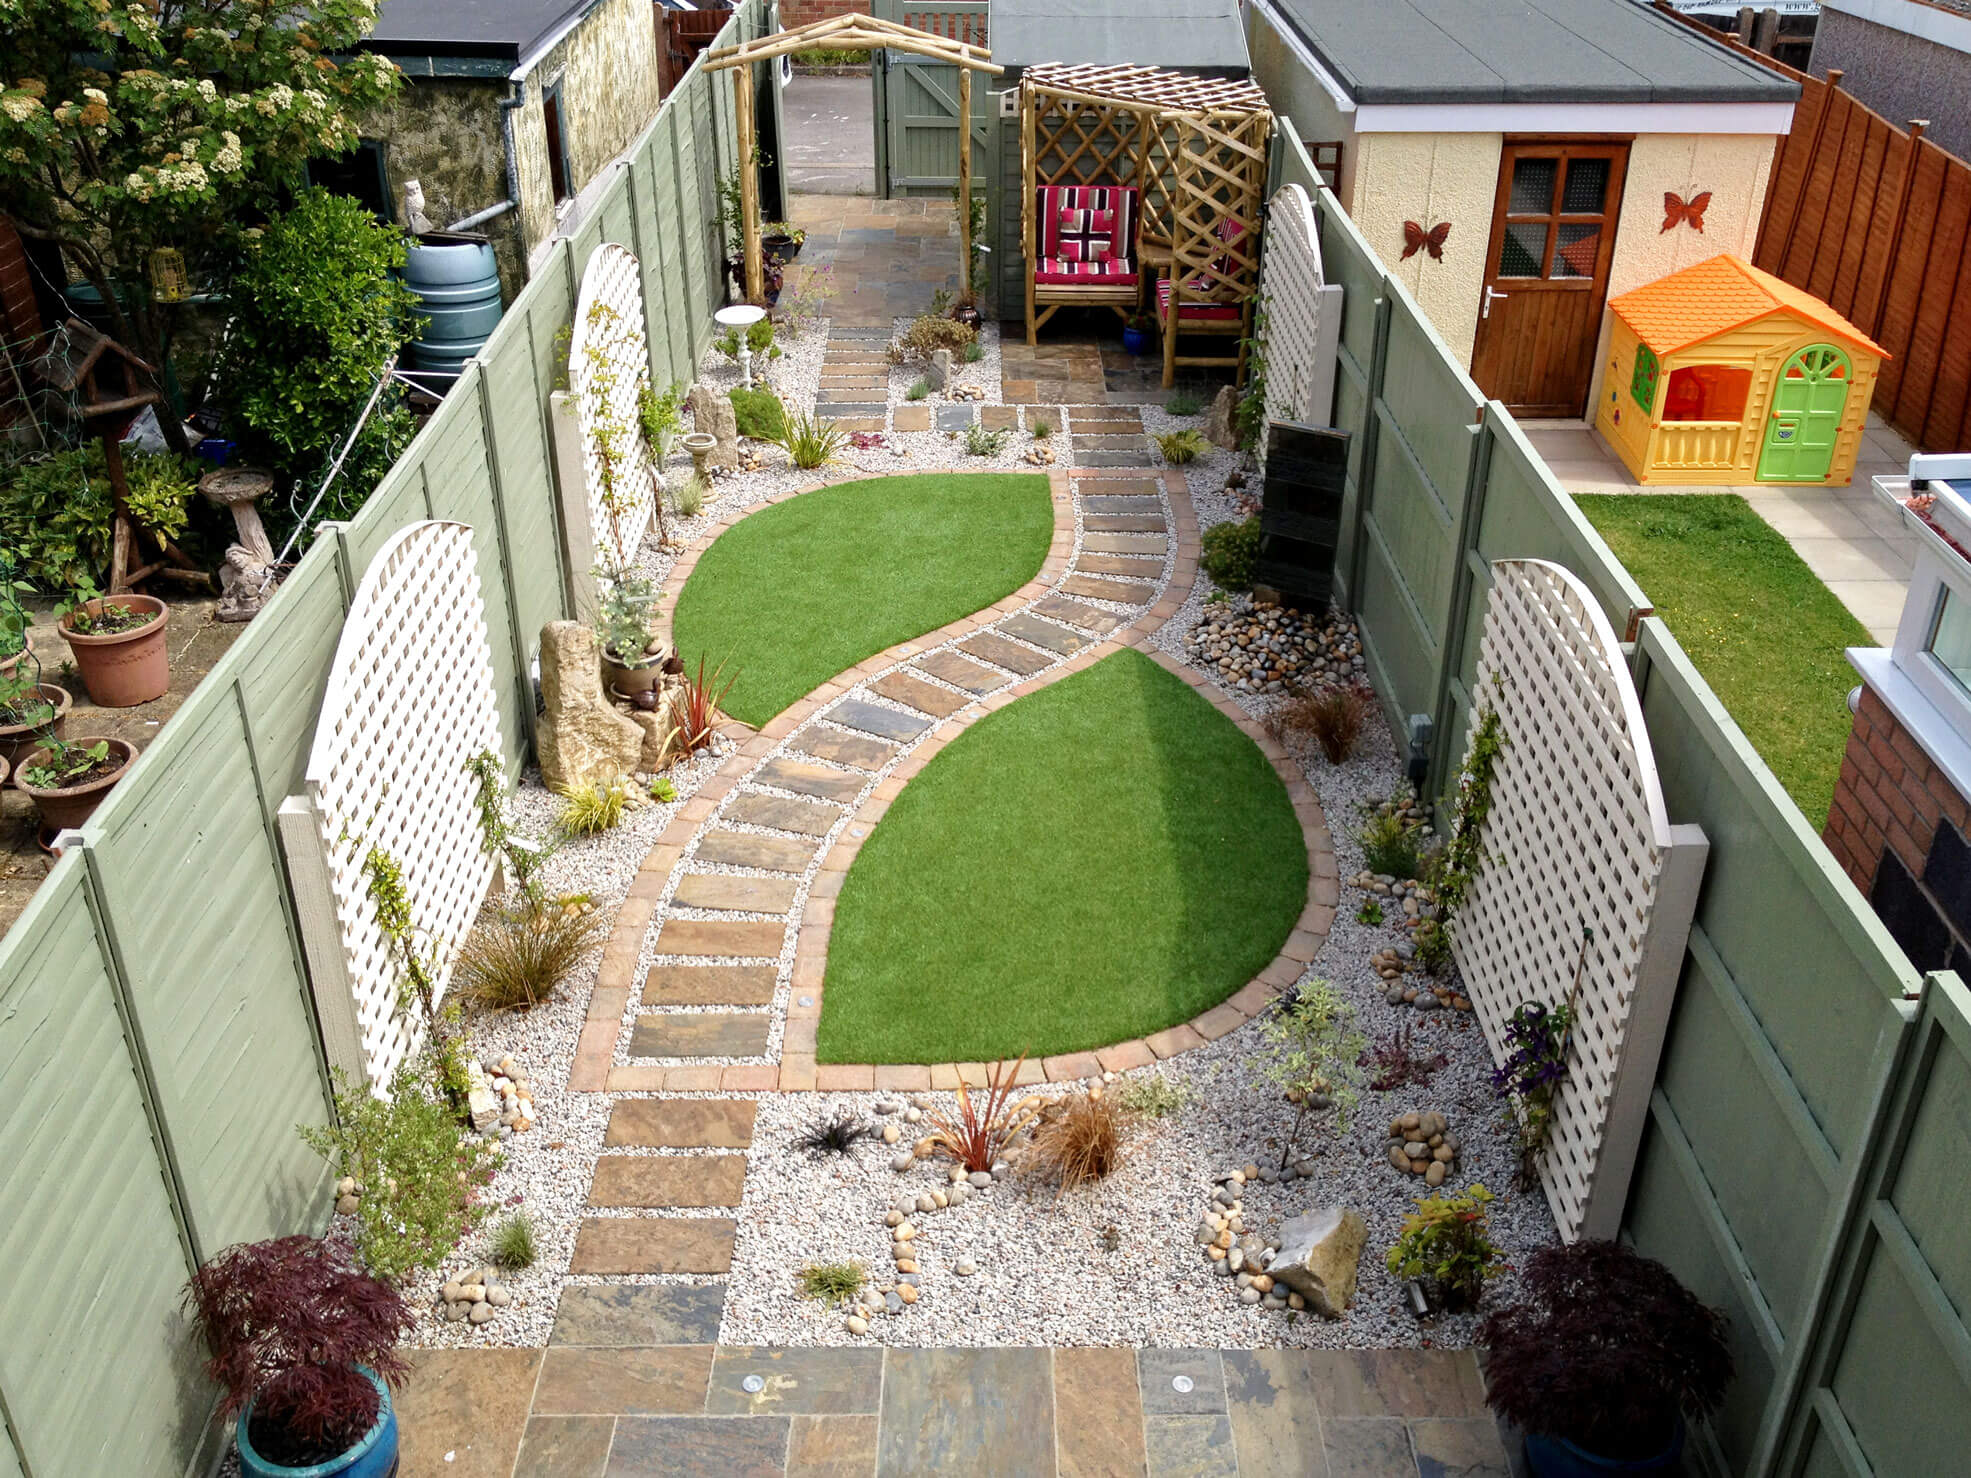 Landscape Gardeners Bournemouth Home greenfingers garden supplies landscaping at greenfingers we have a highly professional conscientious and experience team of gardeners and landscapers ready for action view landscaping workwithnaturefo